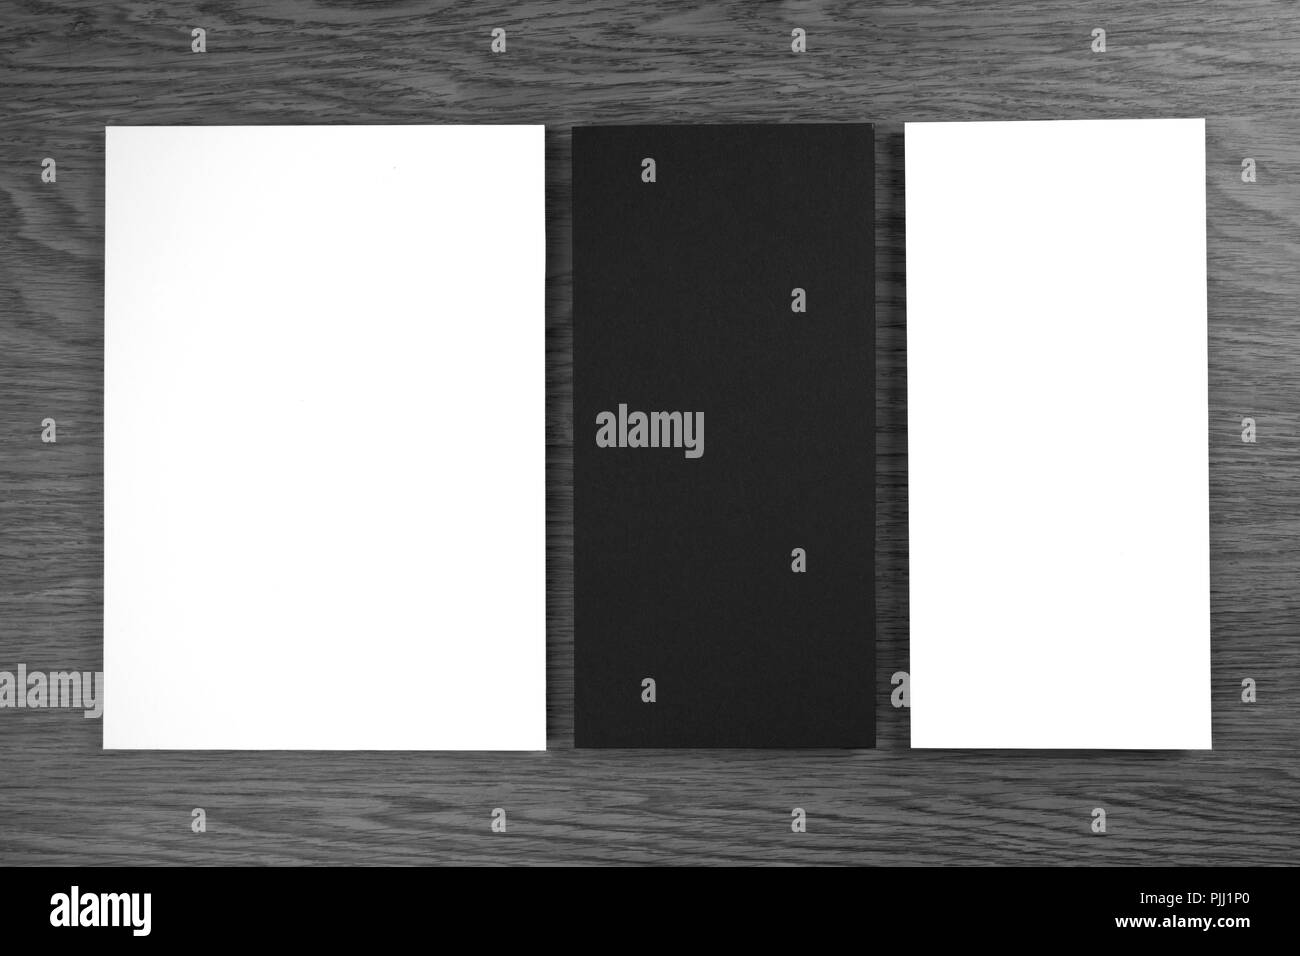 menu cover design template black and white stock photos & images - alamy